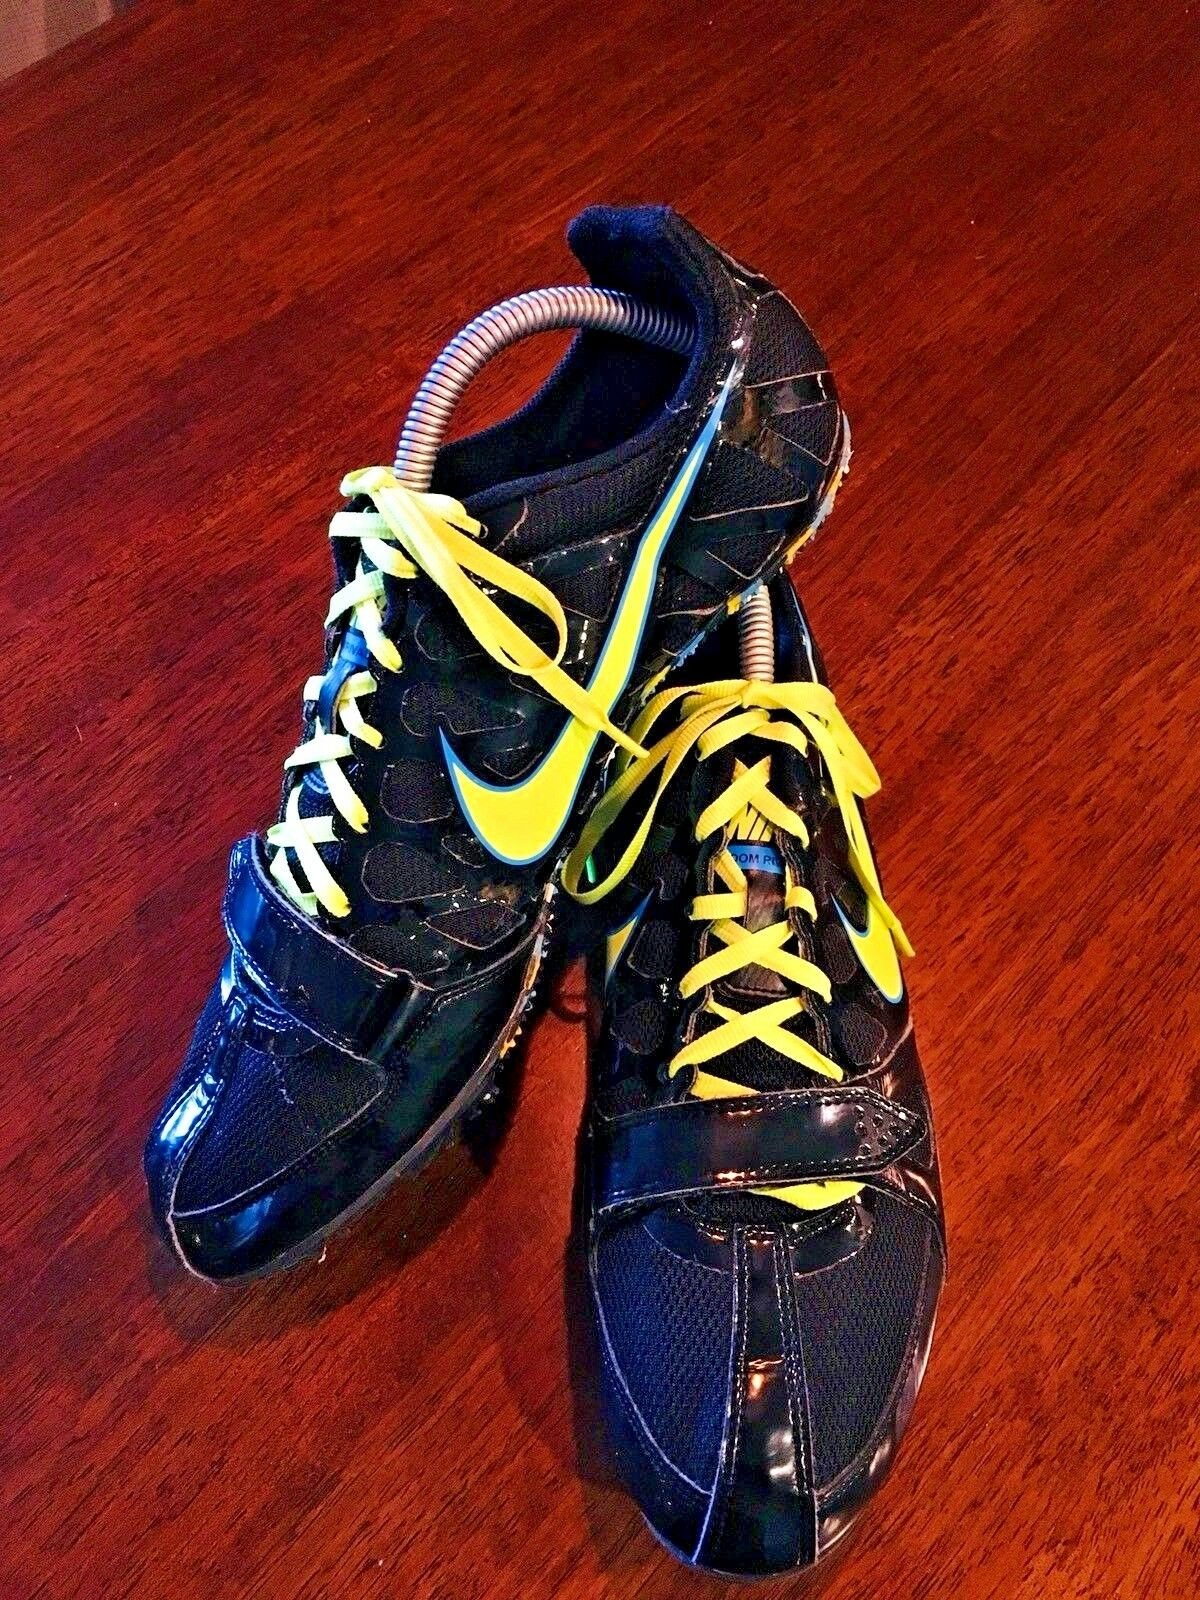 dc353a3d315b NIKE Zoom Rival Sprint 6 Spiked Spiked Spiked Running Black   Yellow  456812-070 SIZE